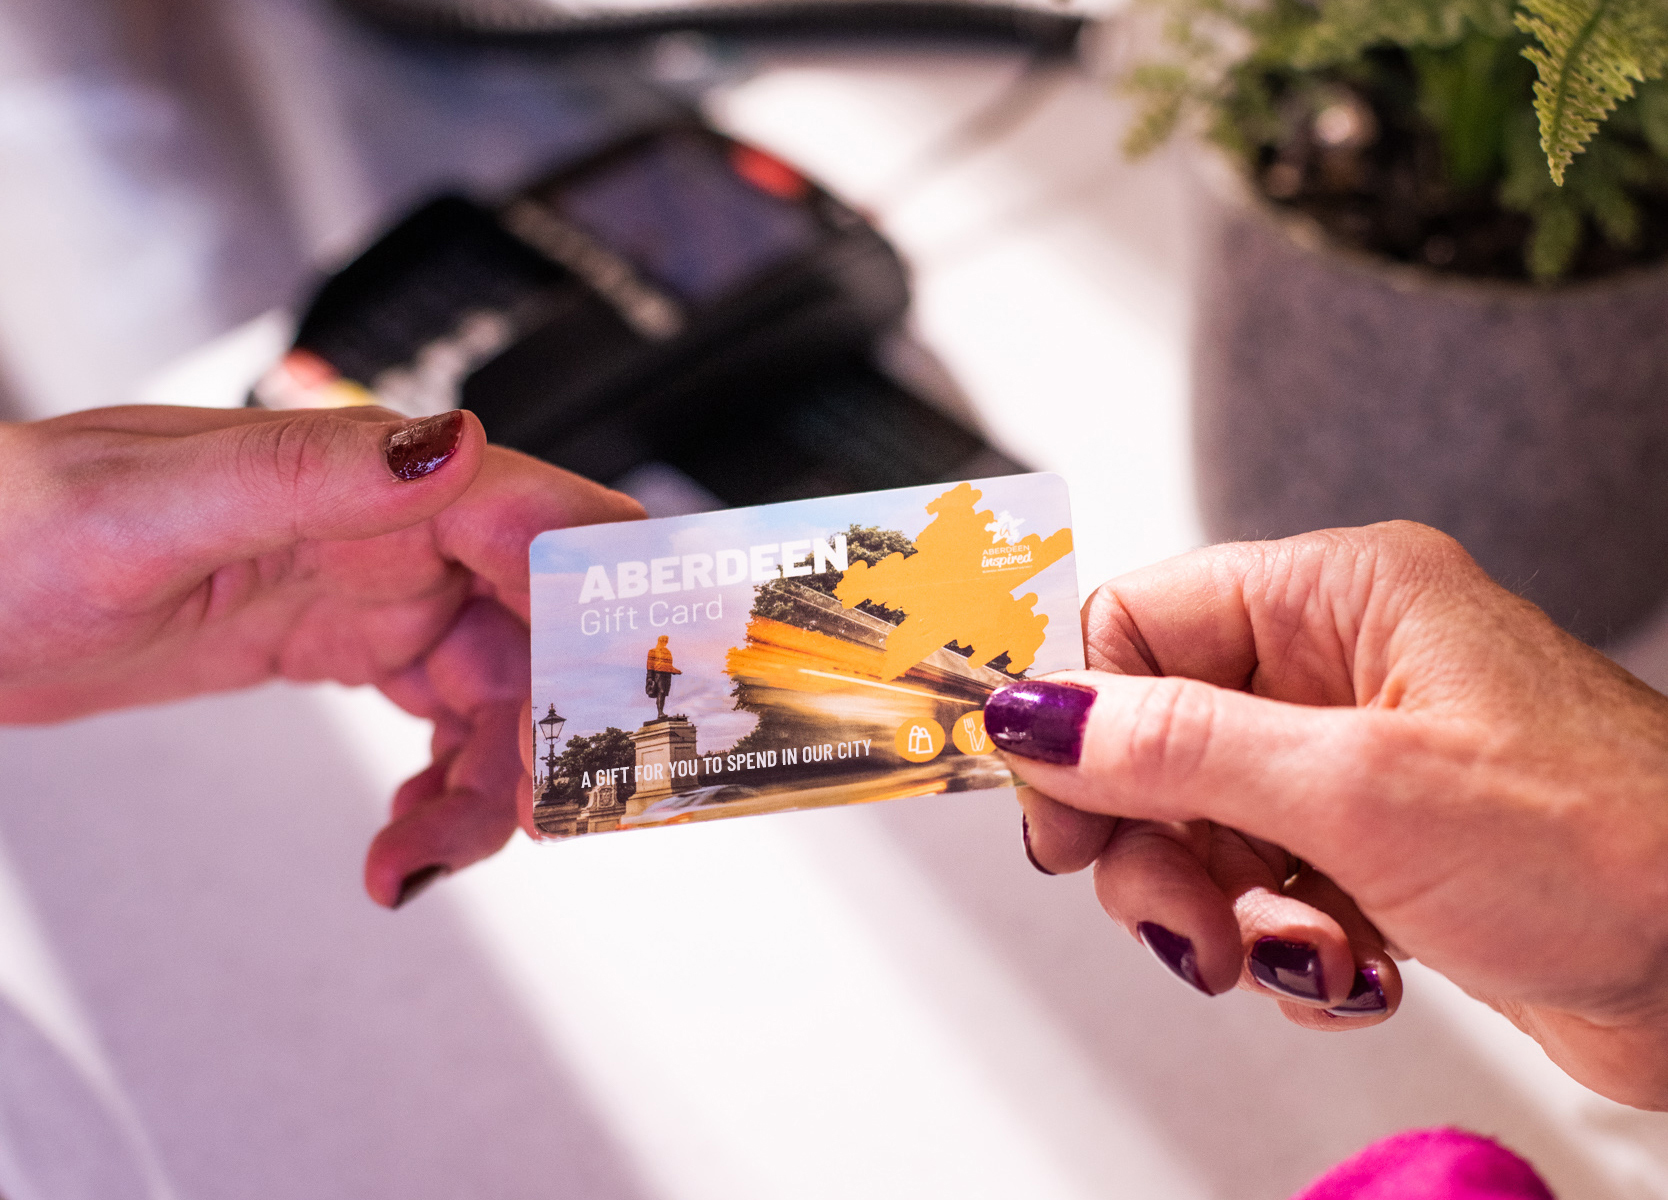 Mum's the word for the Aberdeen Gift Card